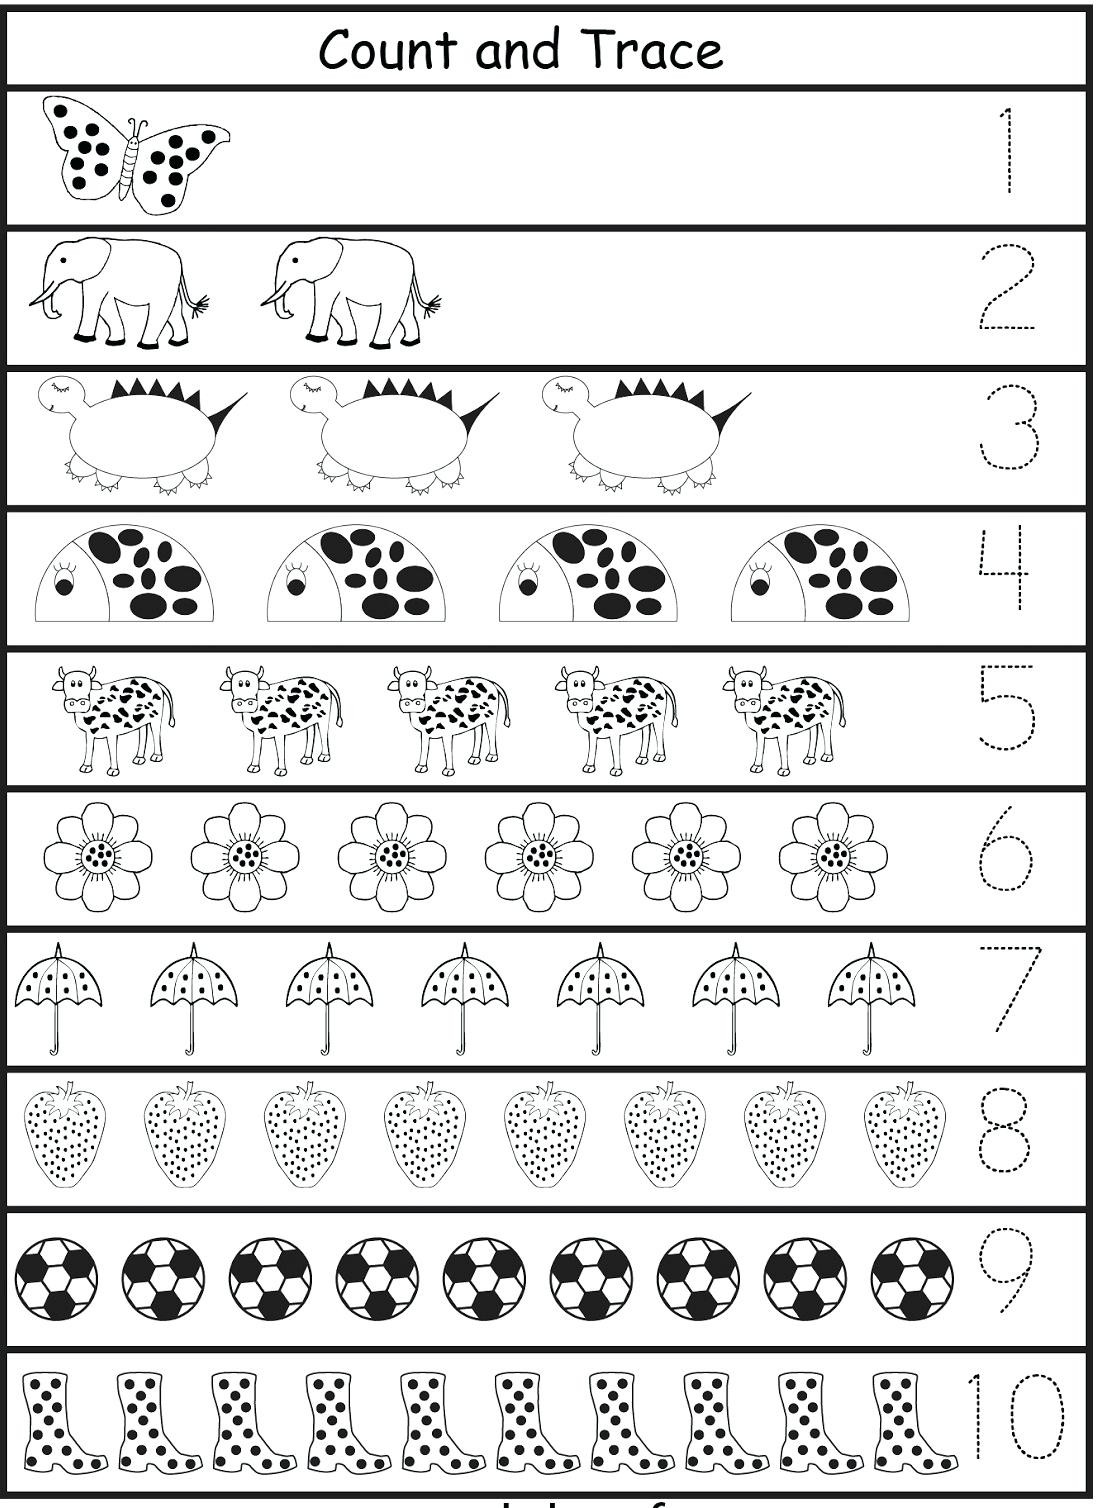 Eighth Grade Science Worksheets 1st Grade Printable Christmas Games for Children Cute